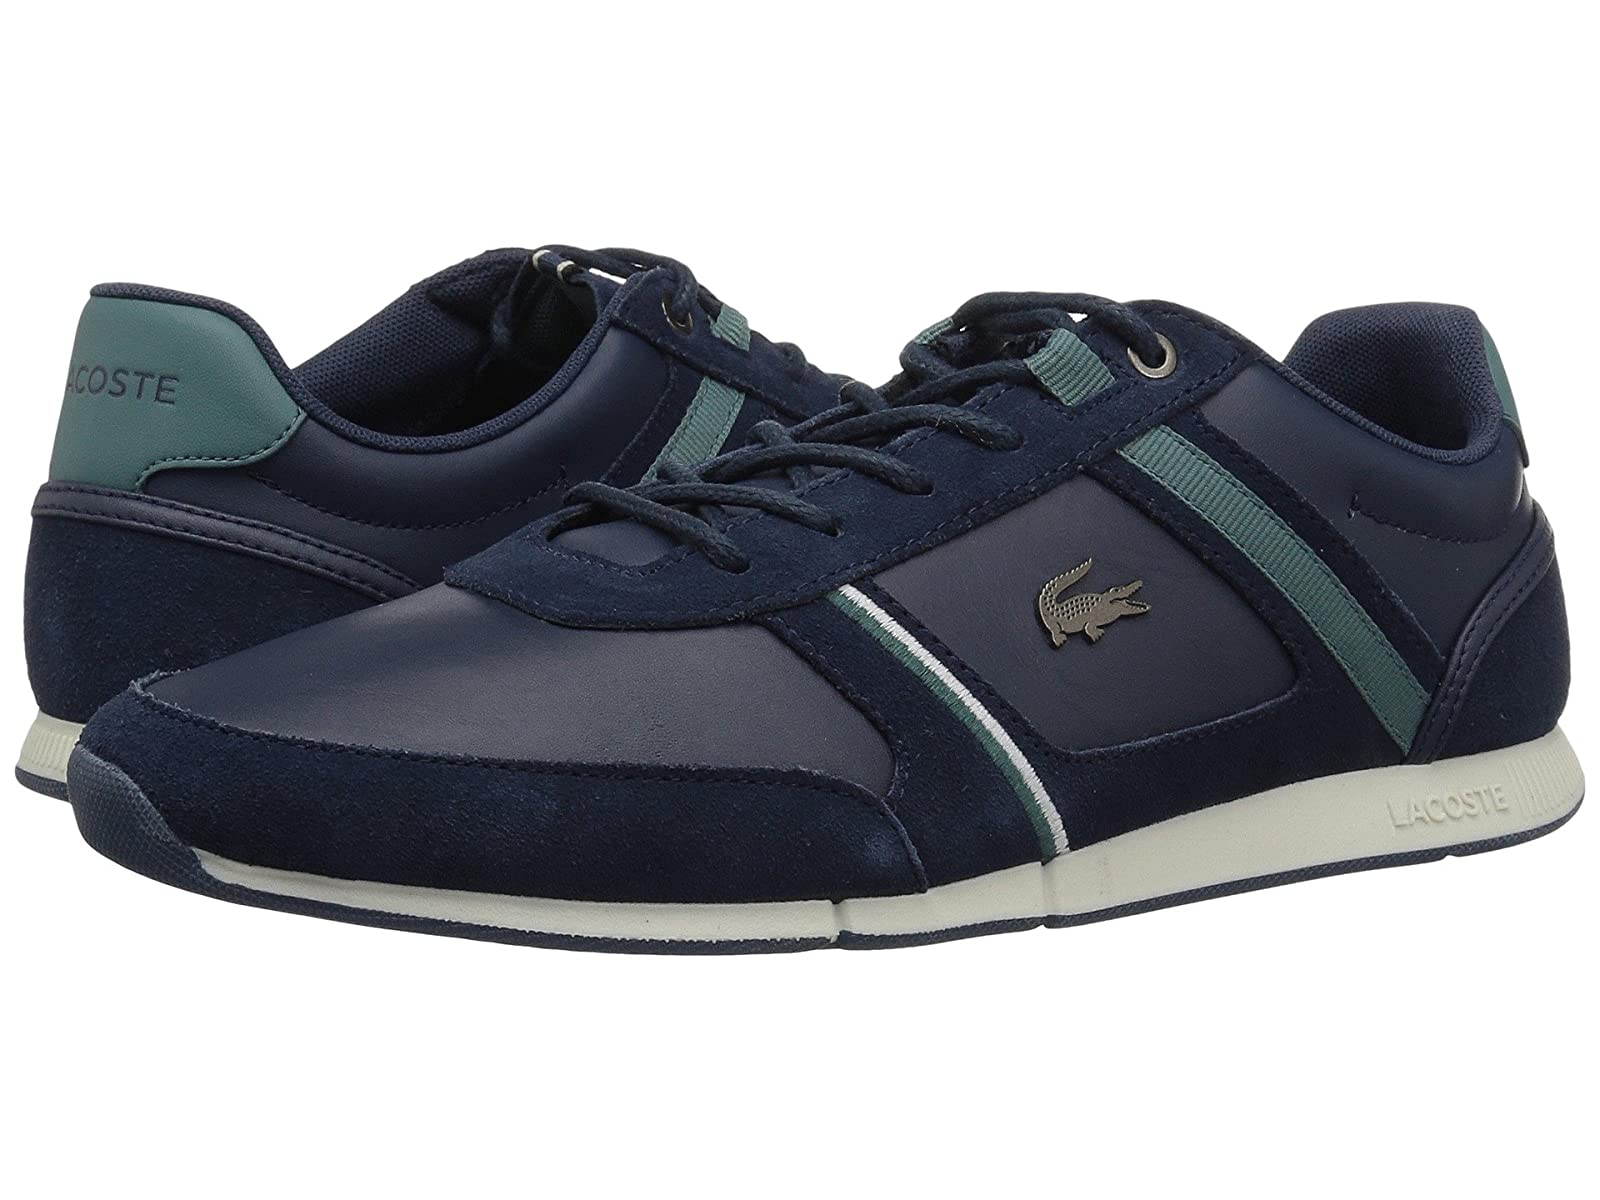 Lacoste Menerva 118 1Atmospheric grades have affordable shoes